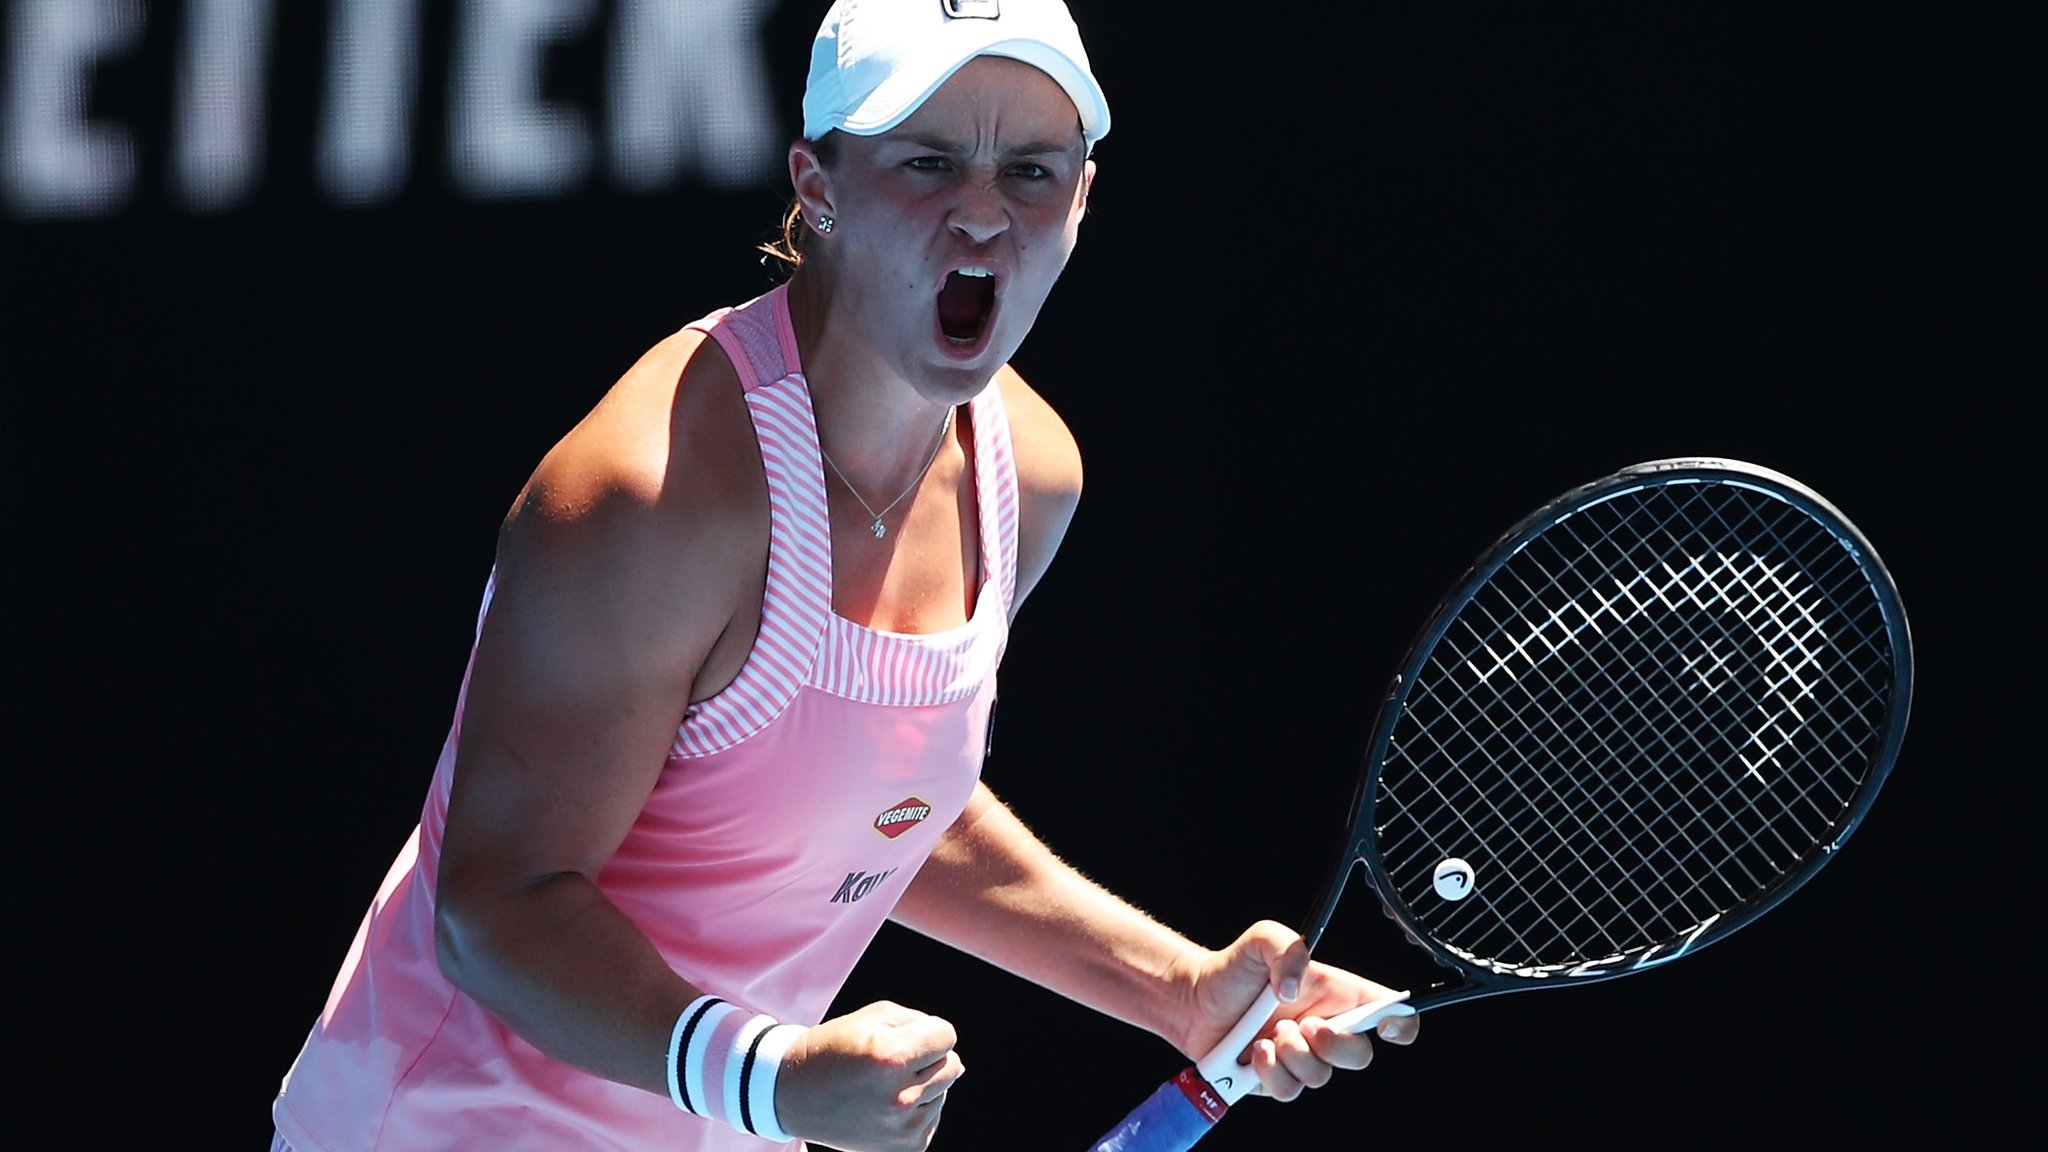 Home favourite Barty eyes revenge against Kvitova in last eight